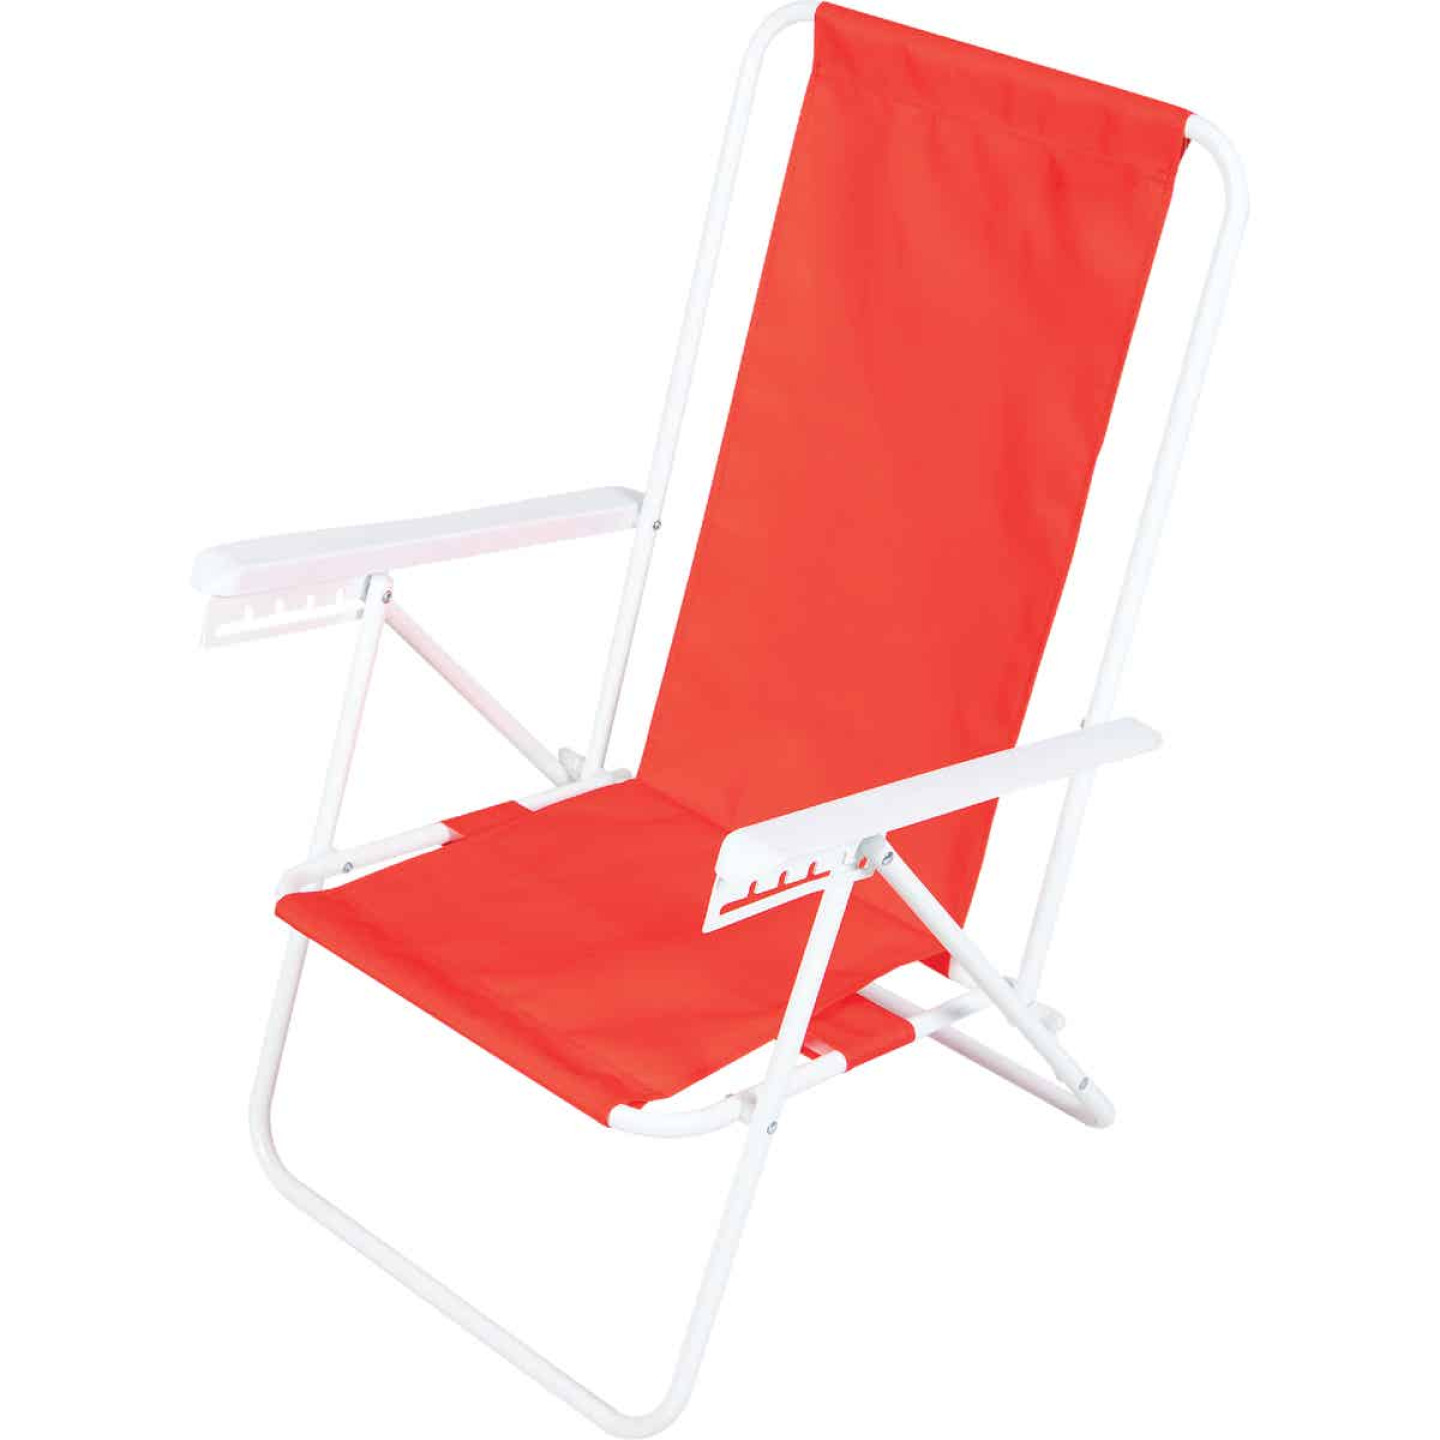 Rio Brands Wave 5-Position Persimmon Red Steel Folding Beach Chair Image 5